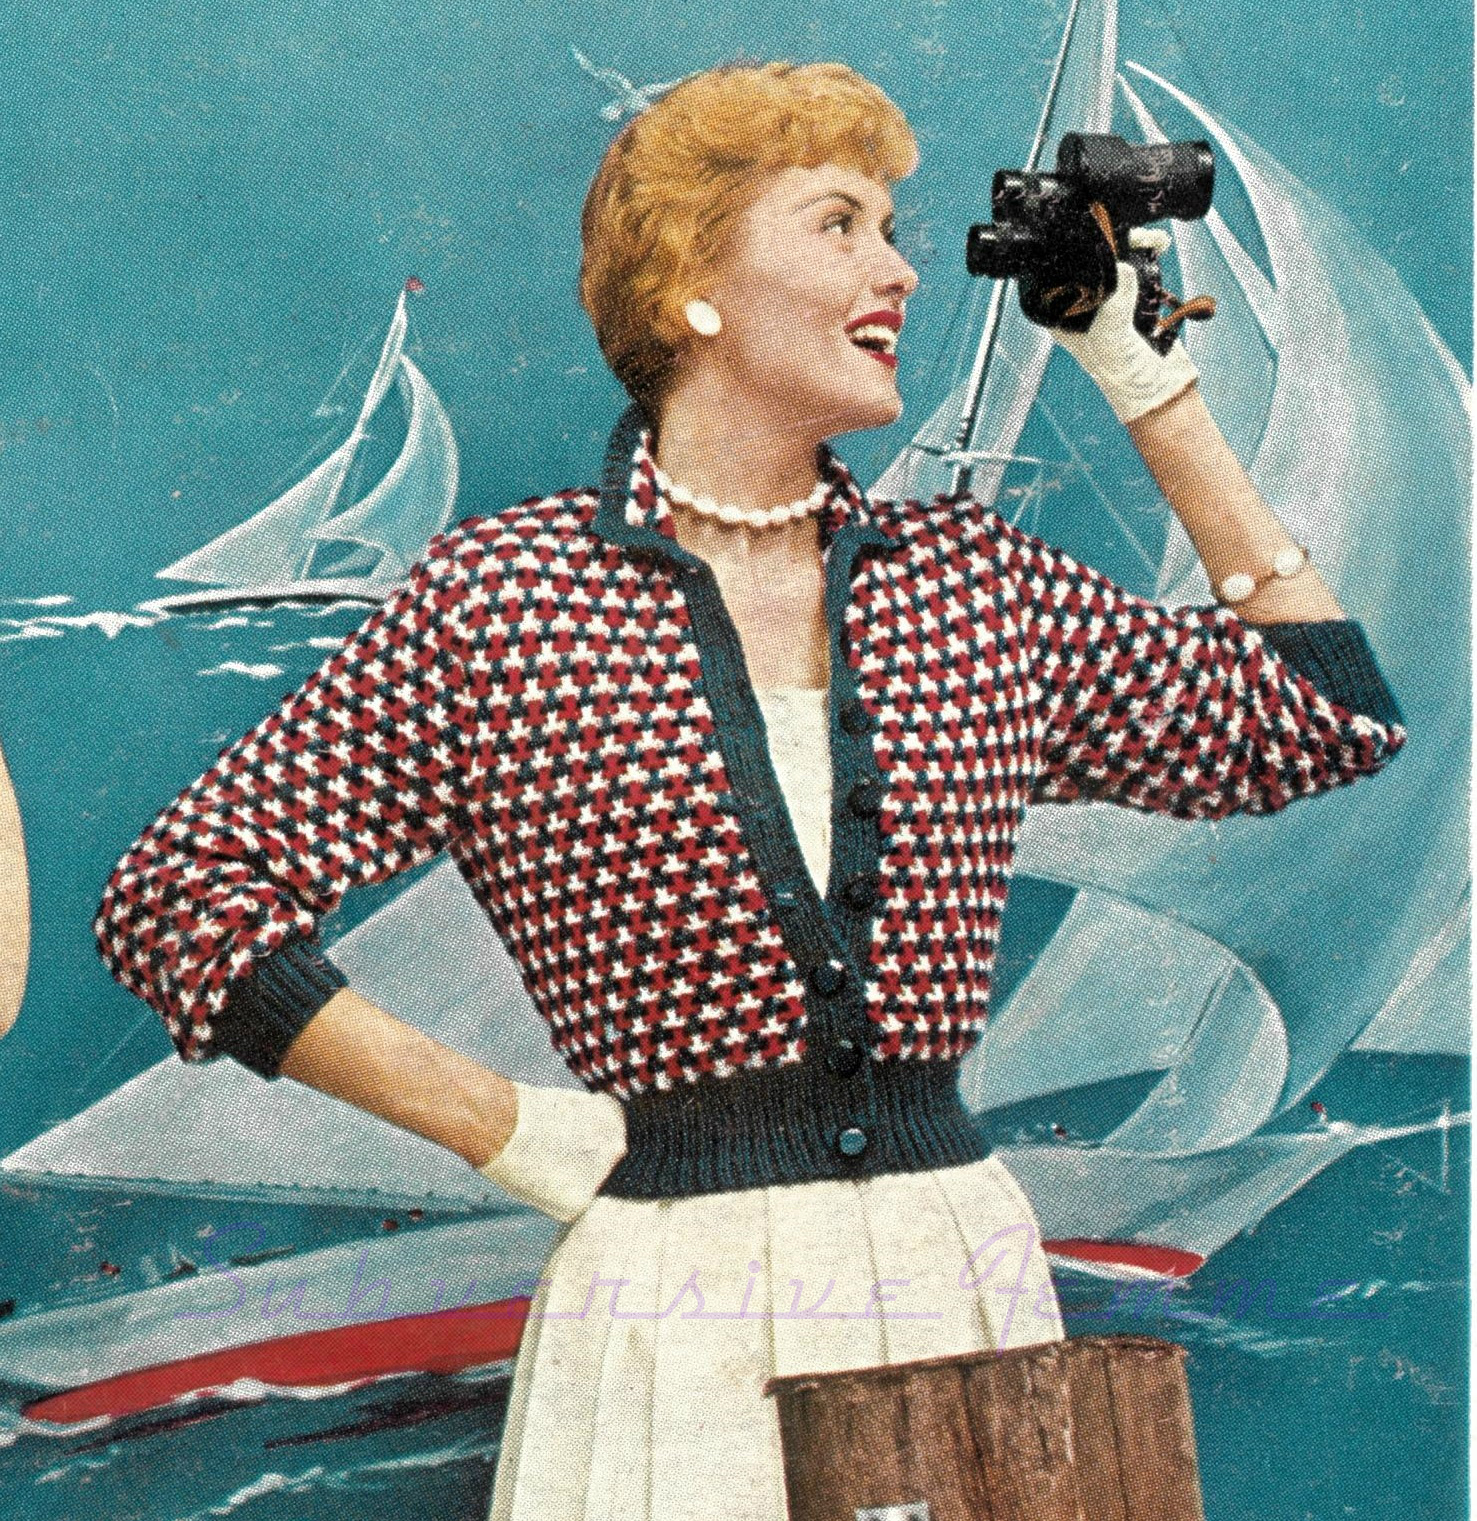 Free Vintage Knitting Patterns 1950s : The Vintage Pattern Files: 1950s Knitting - Nautical Topper in Thick Wool